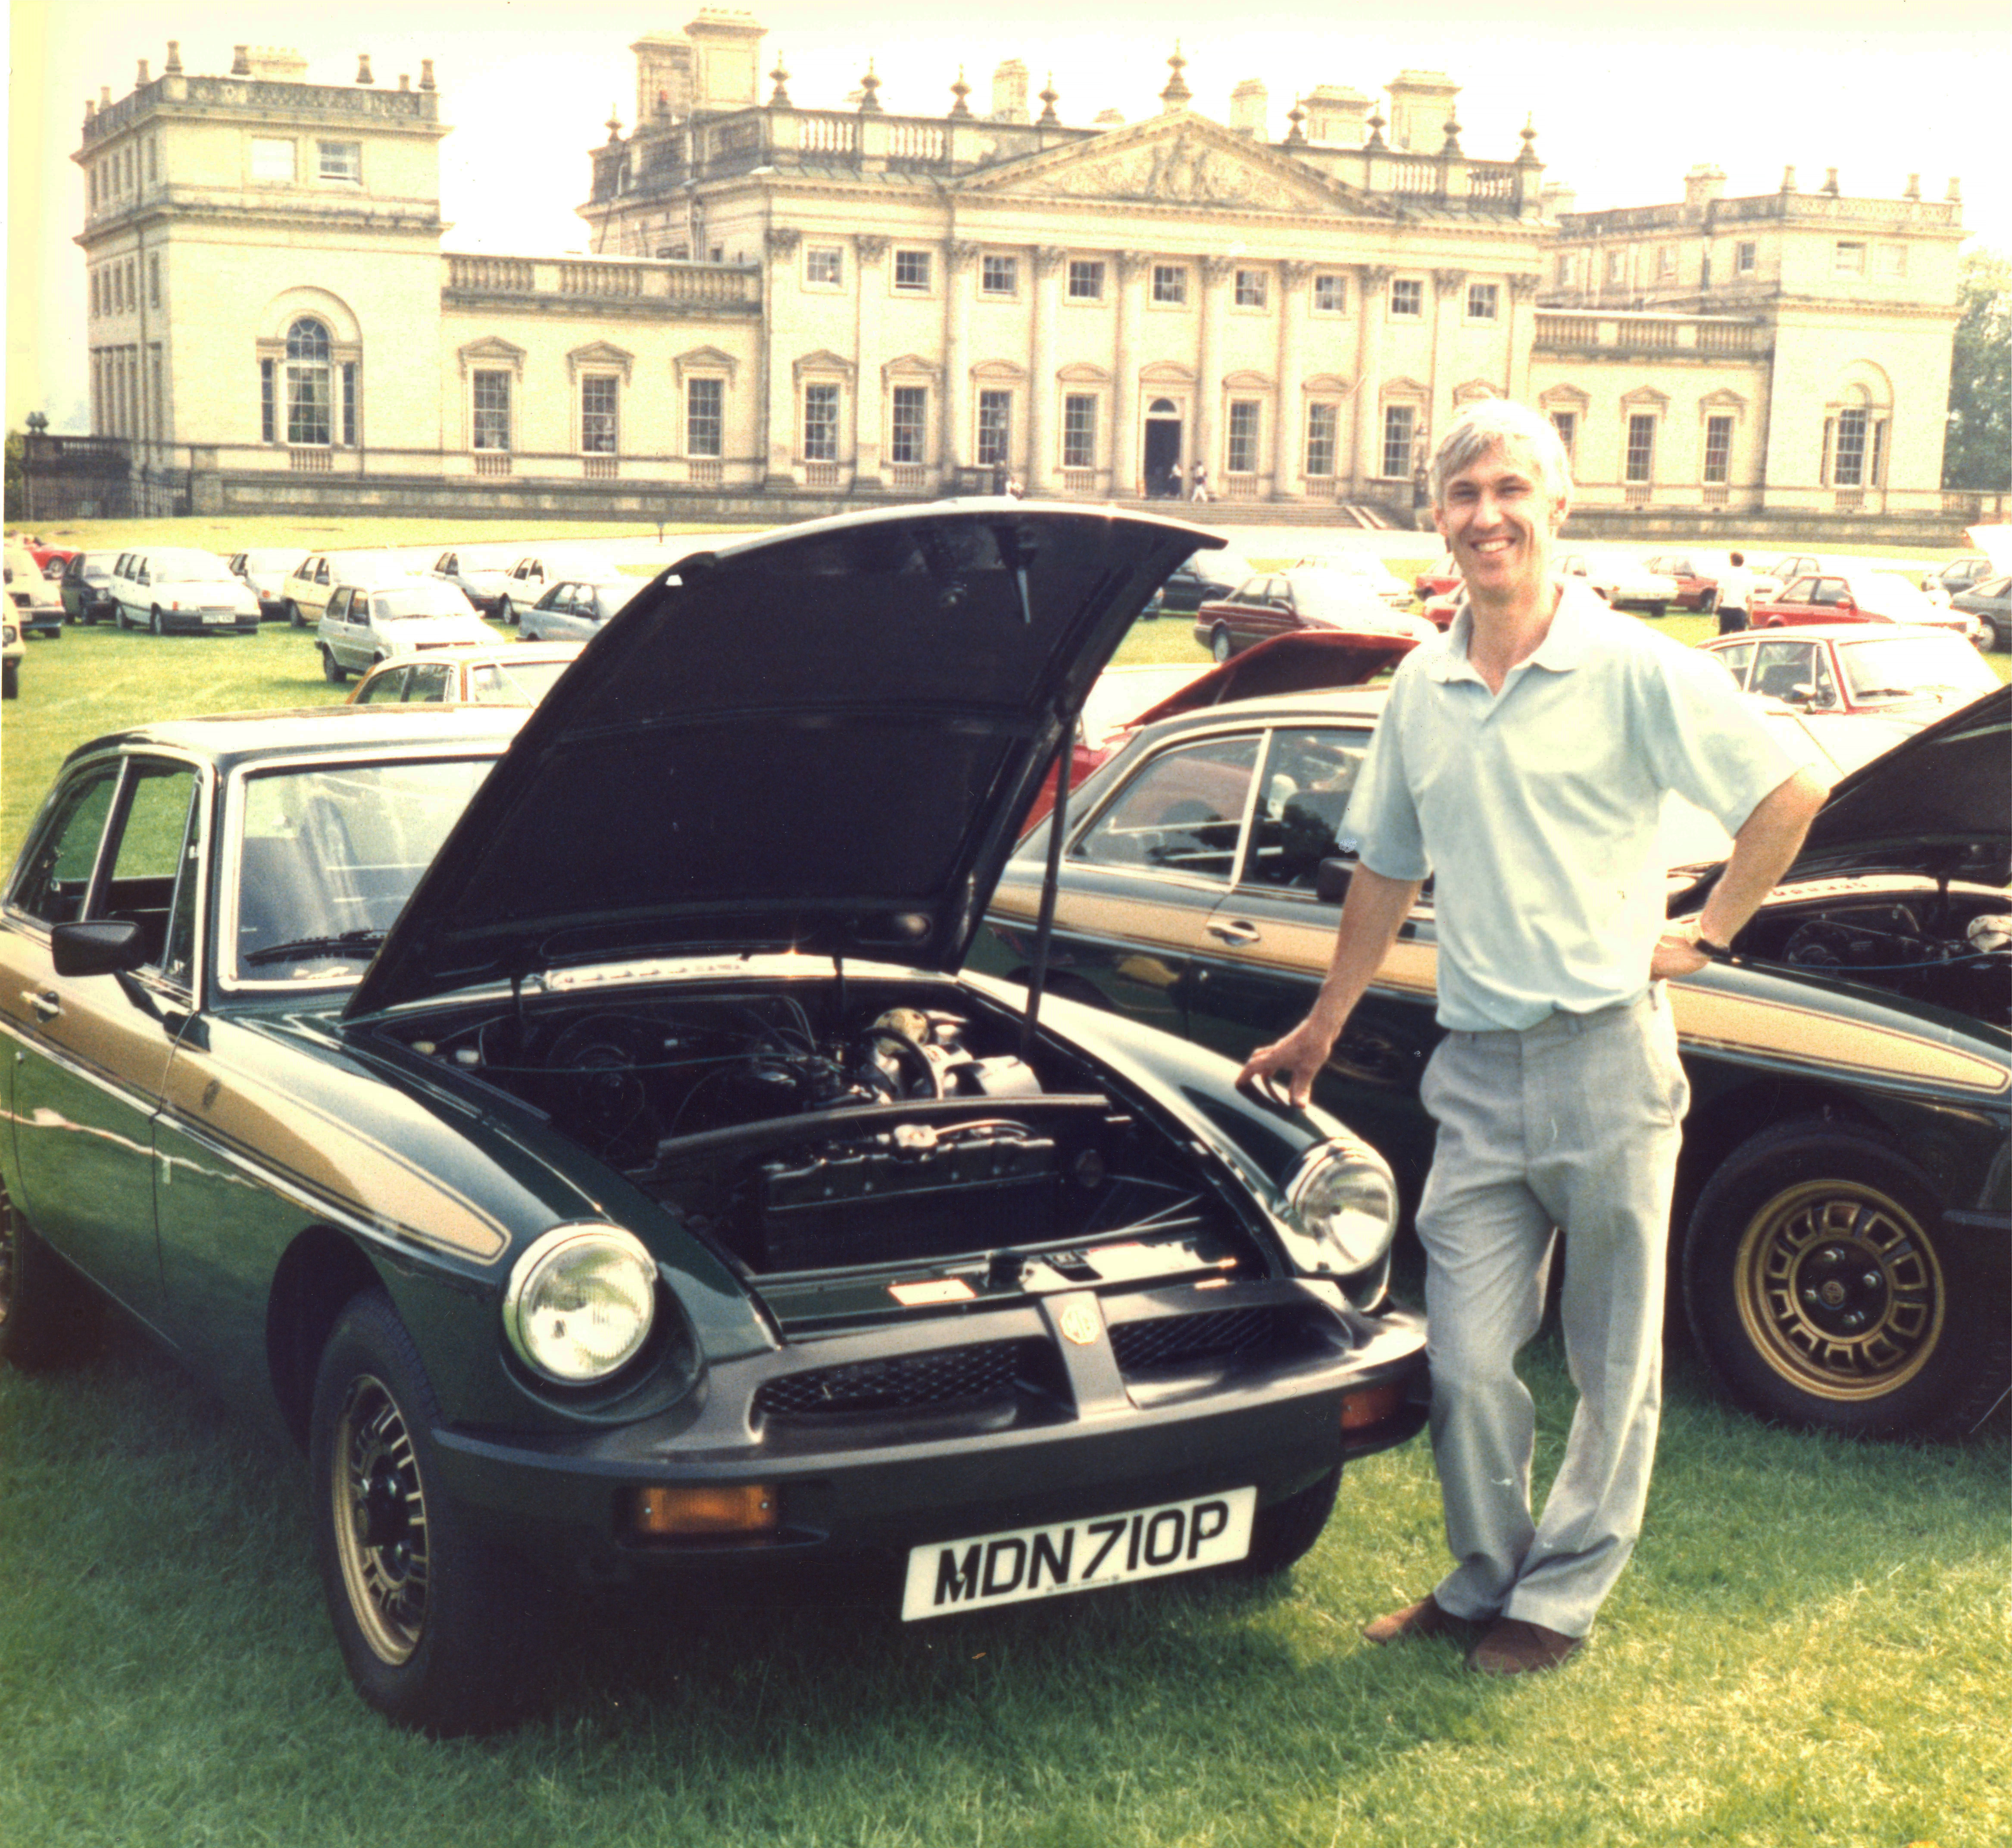 Steve lovingly restored the 1975 motor and took it to car shows all over the country